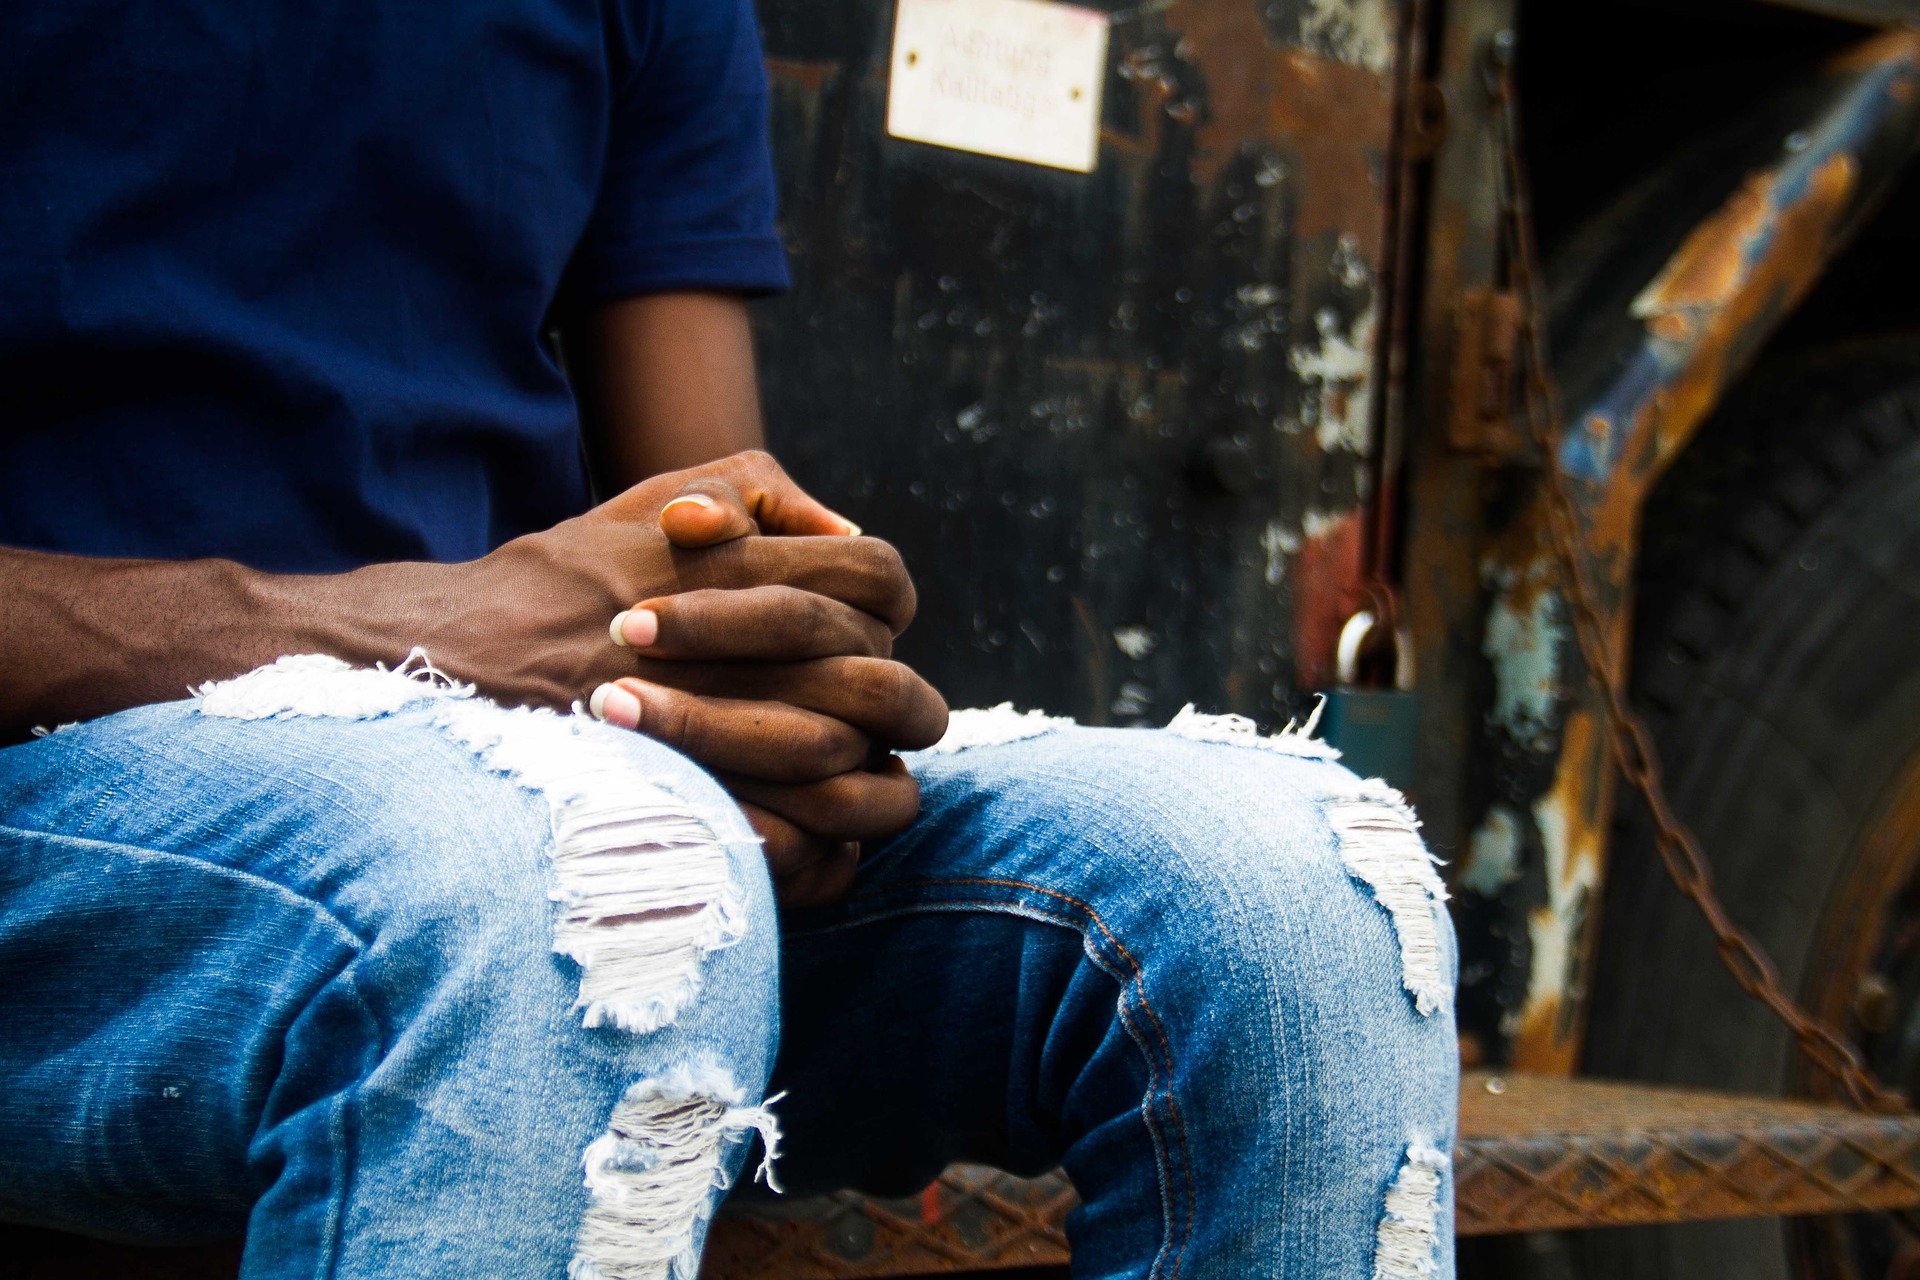 A photo of the lower half of a person sitting in a blue shirt and ripped jeans with hands folded in lap.